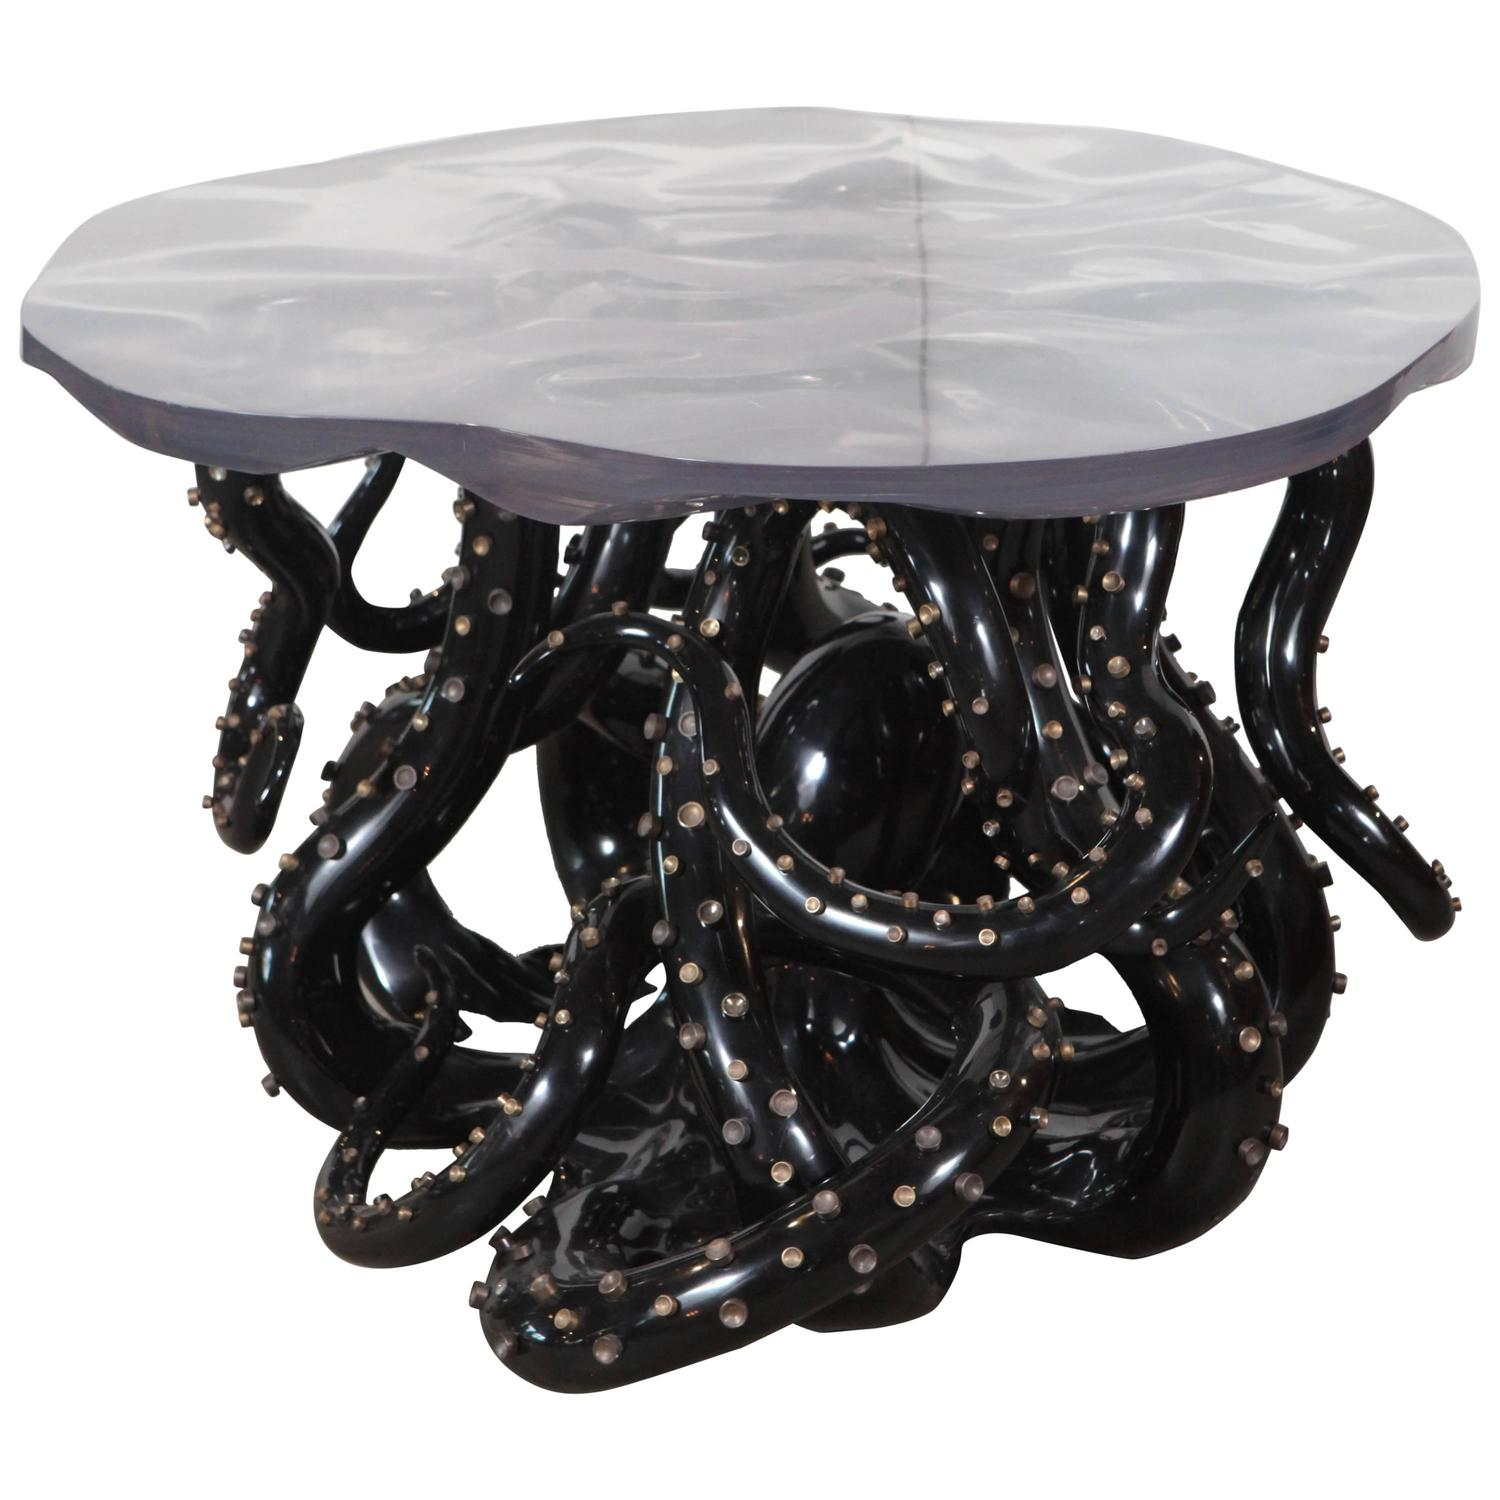 Black Octopus Table For Sale at 1stdibs